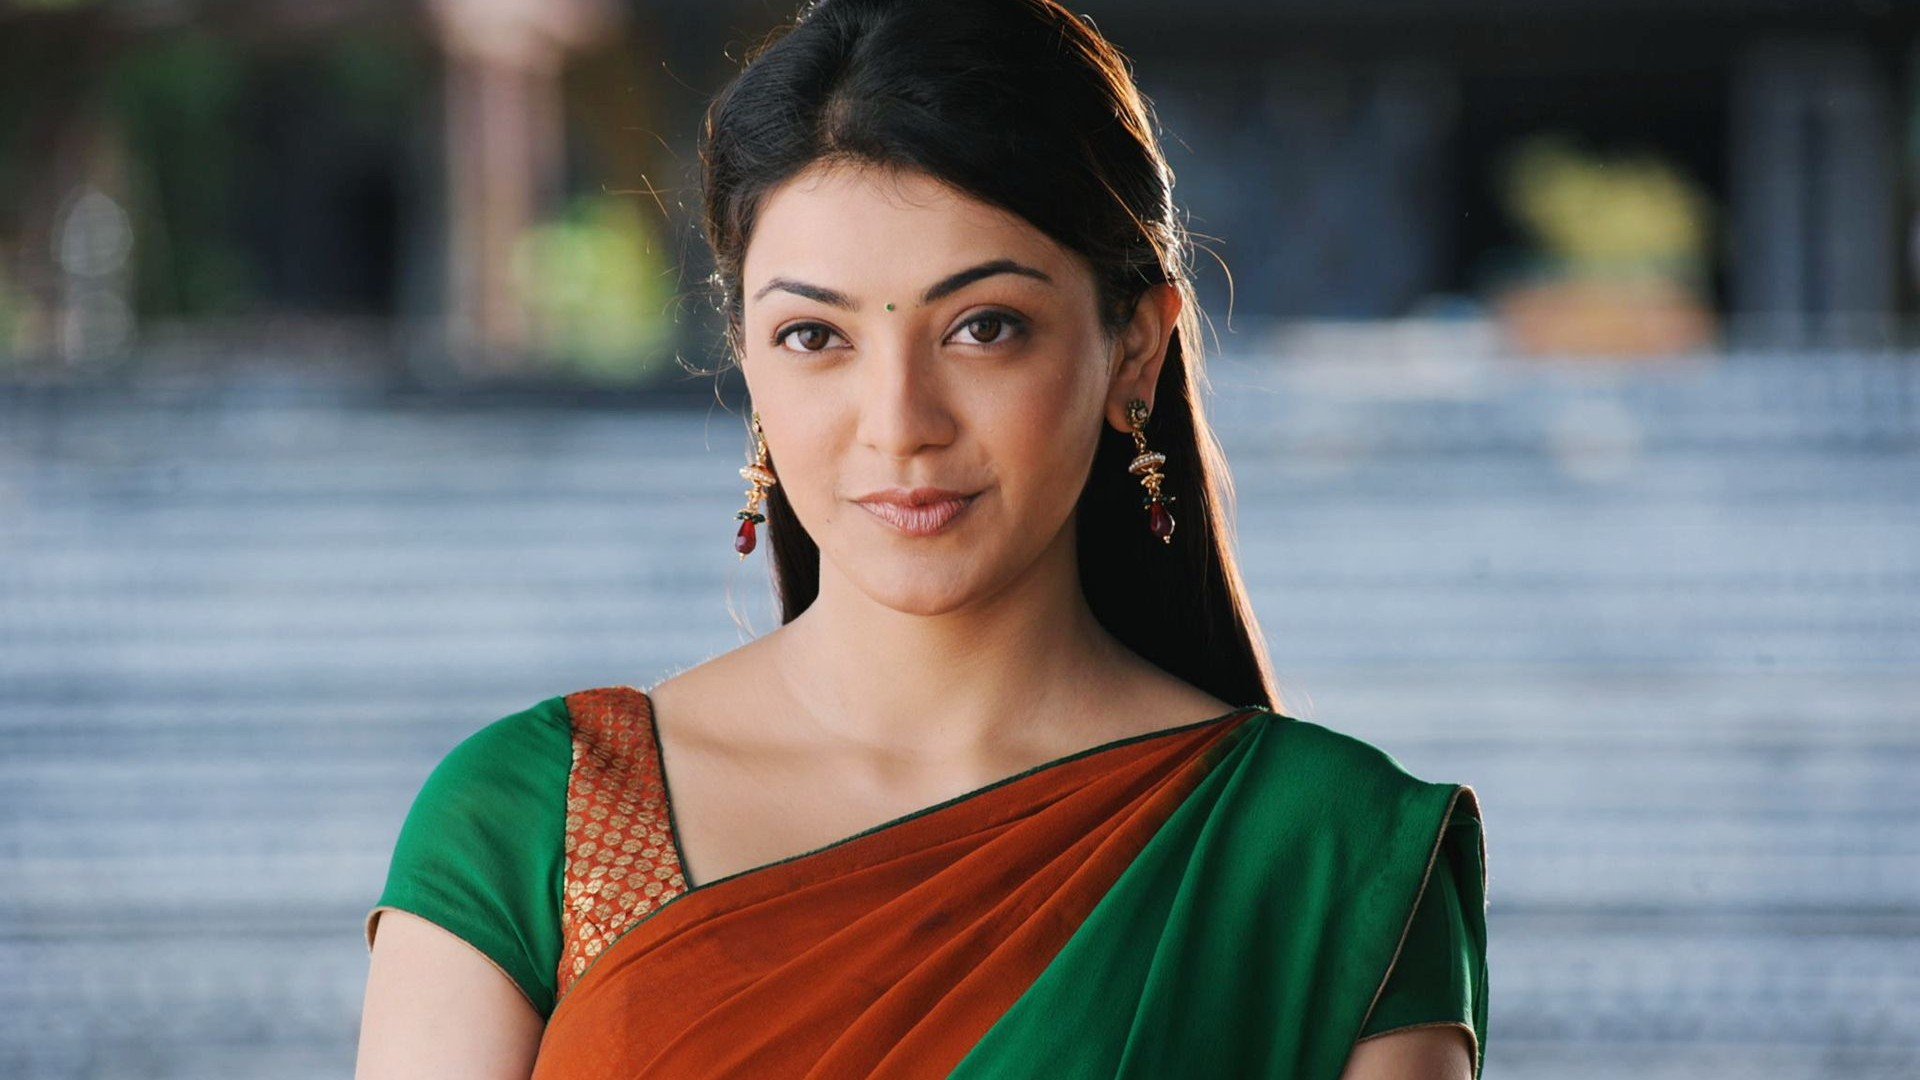 preview kajal agarwal wallpaperandy edmeades